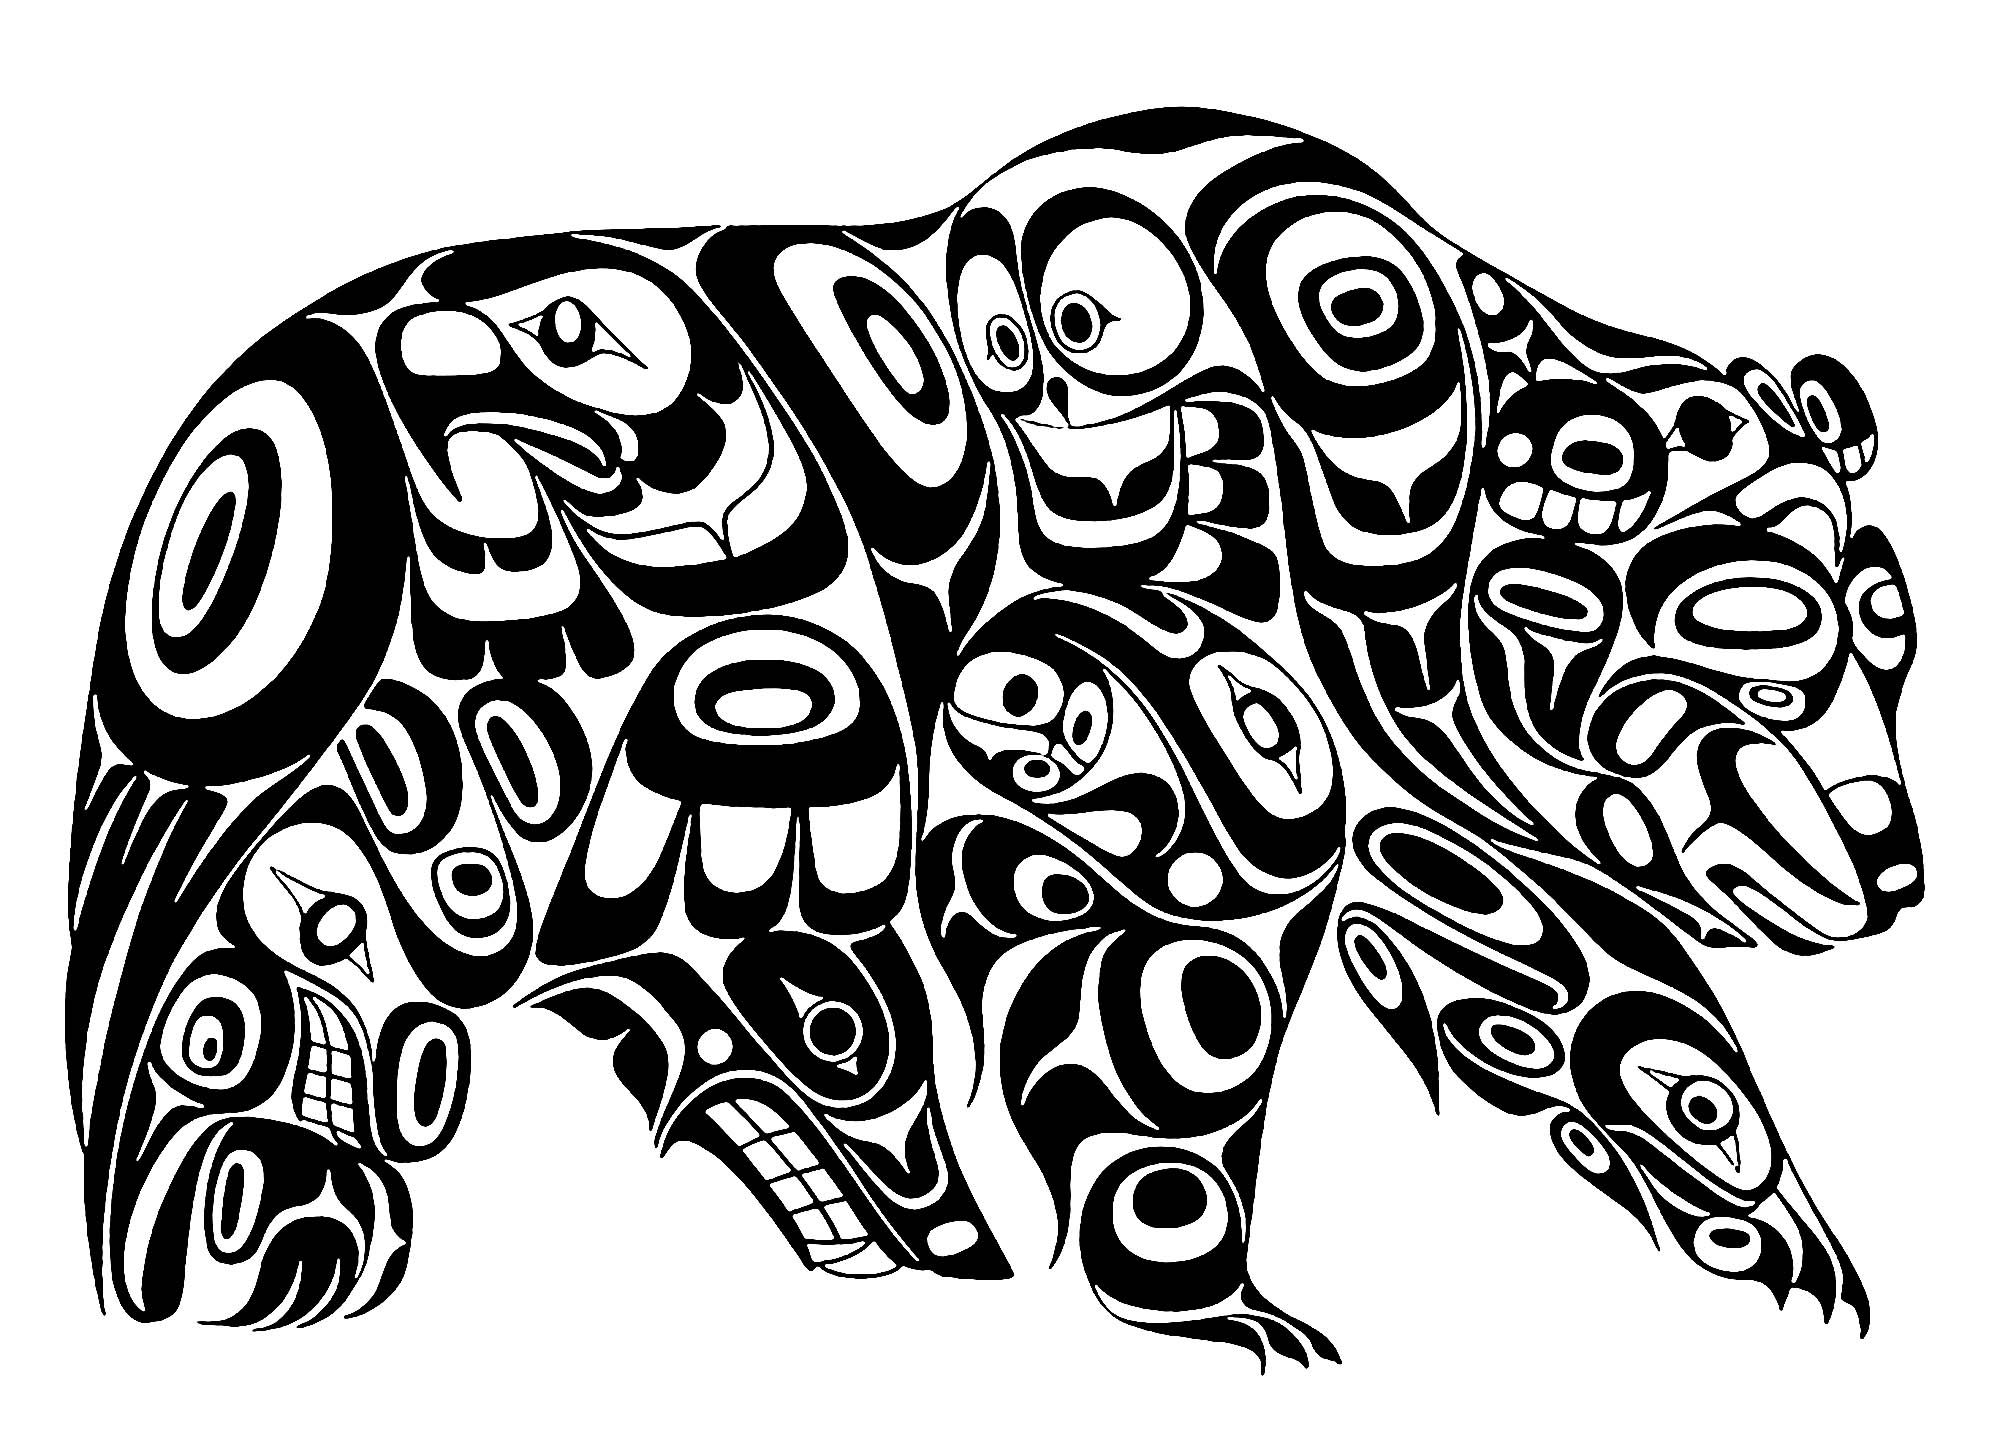 native art coloring pages image result for native american art coloring pages pages coloring art native